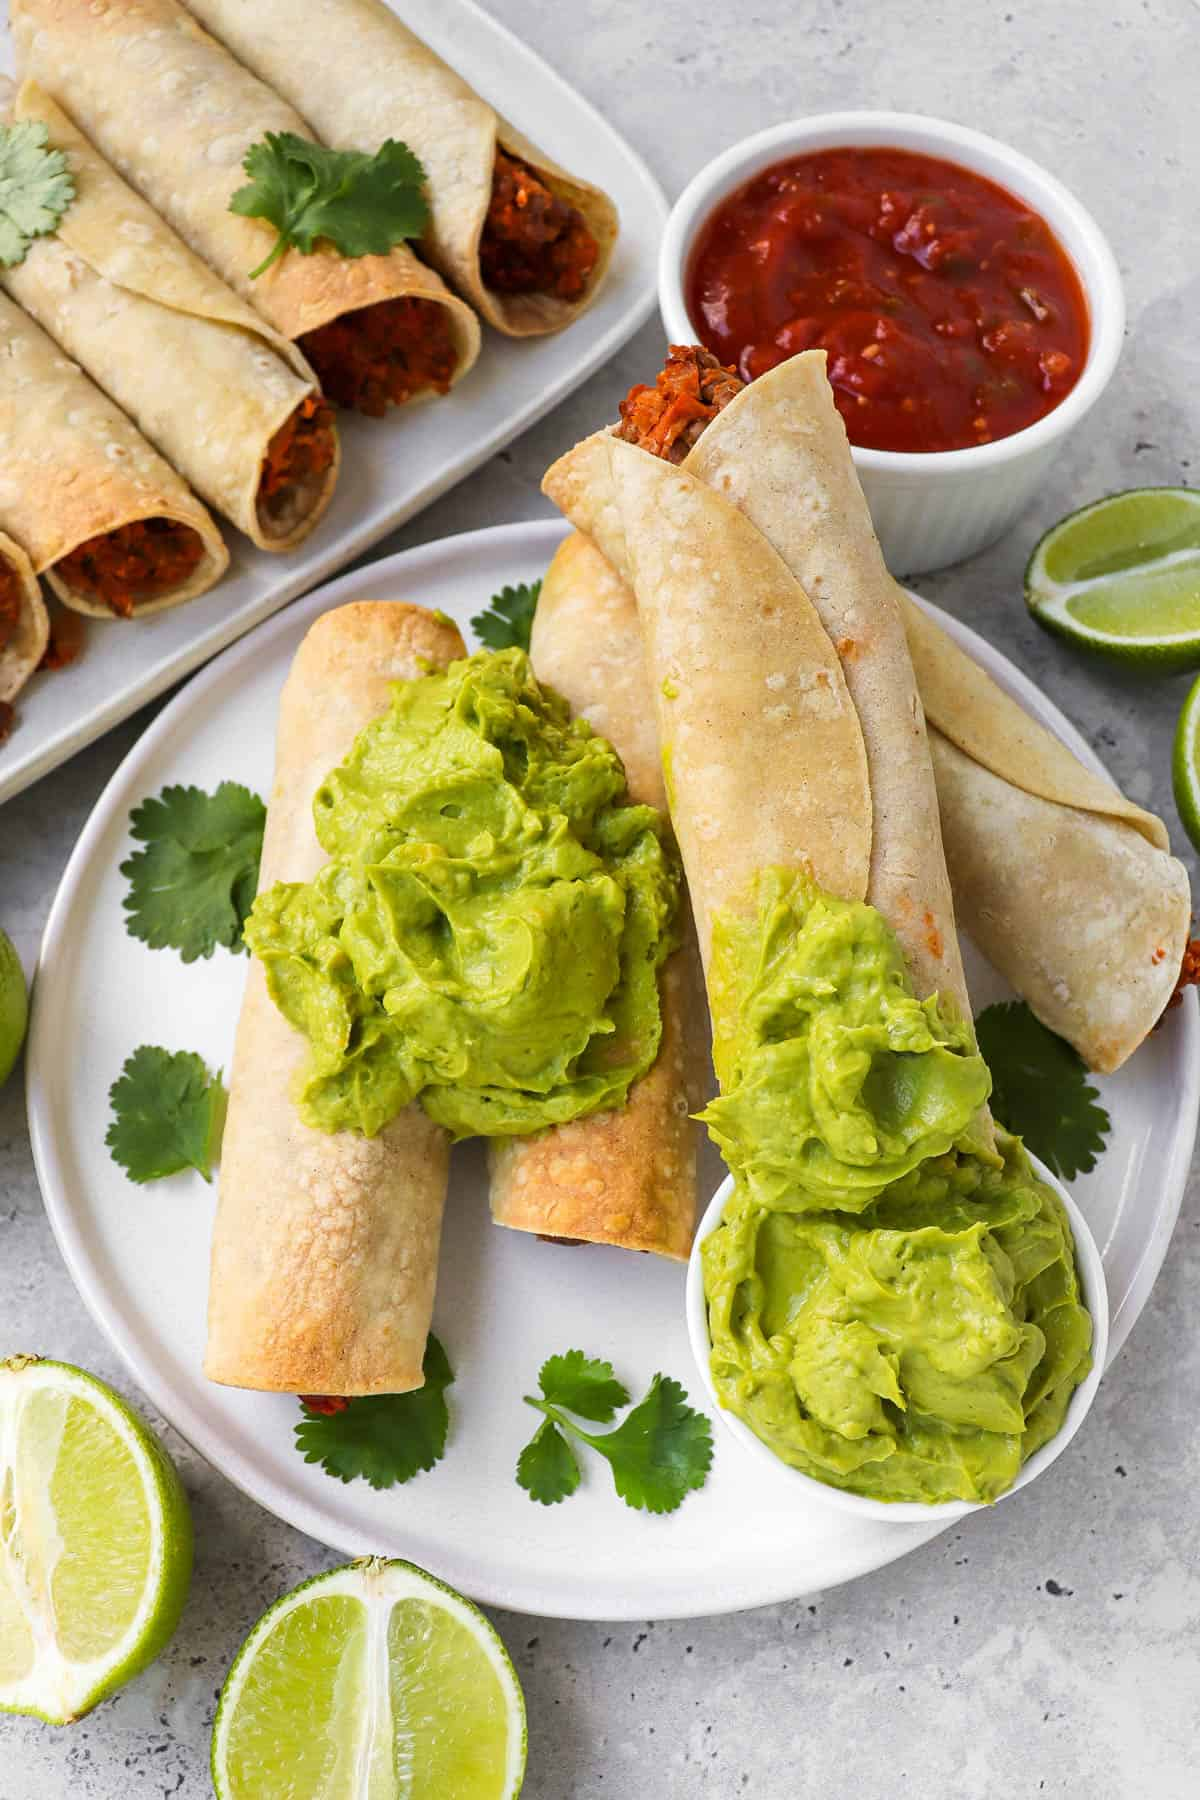 Taquitos on a plate dipped in the guacamole.